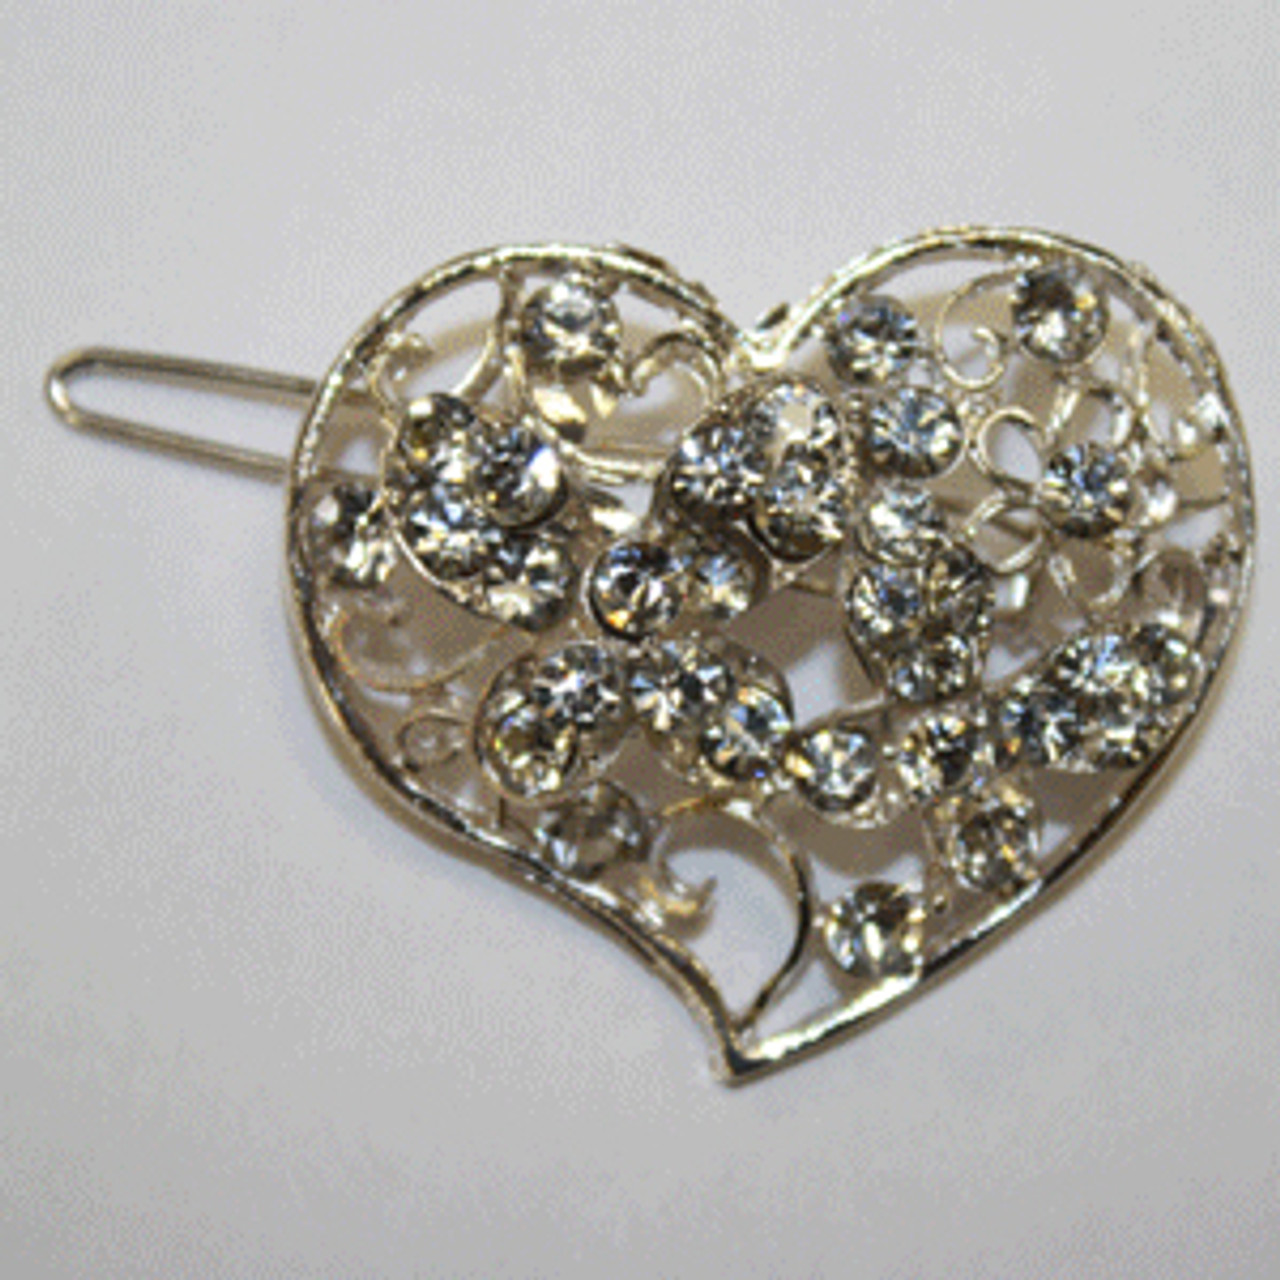 Clear heart barrette